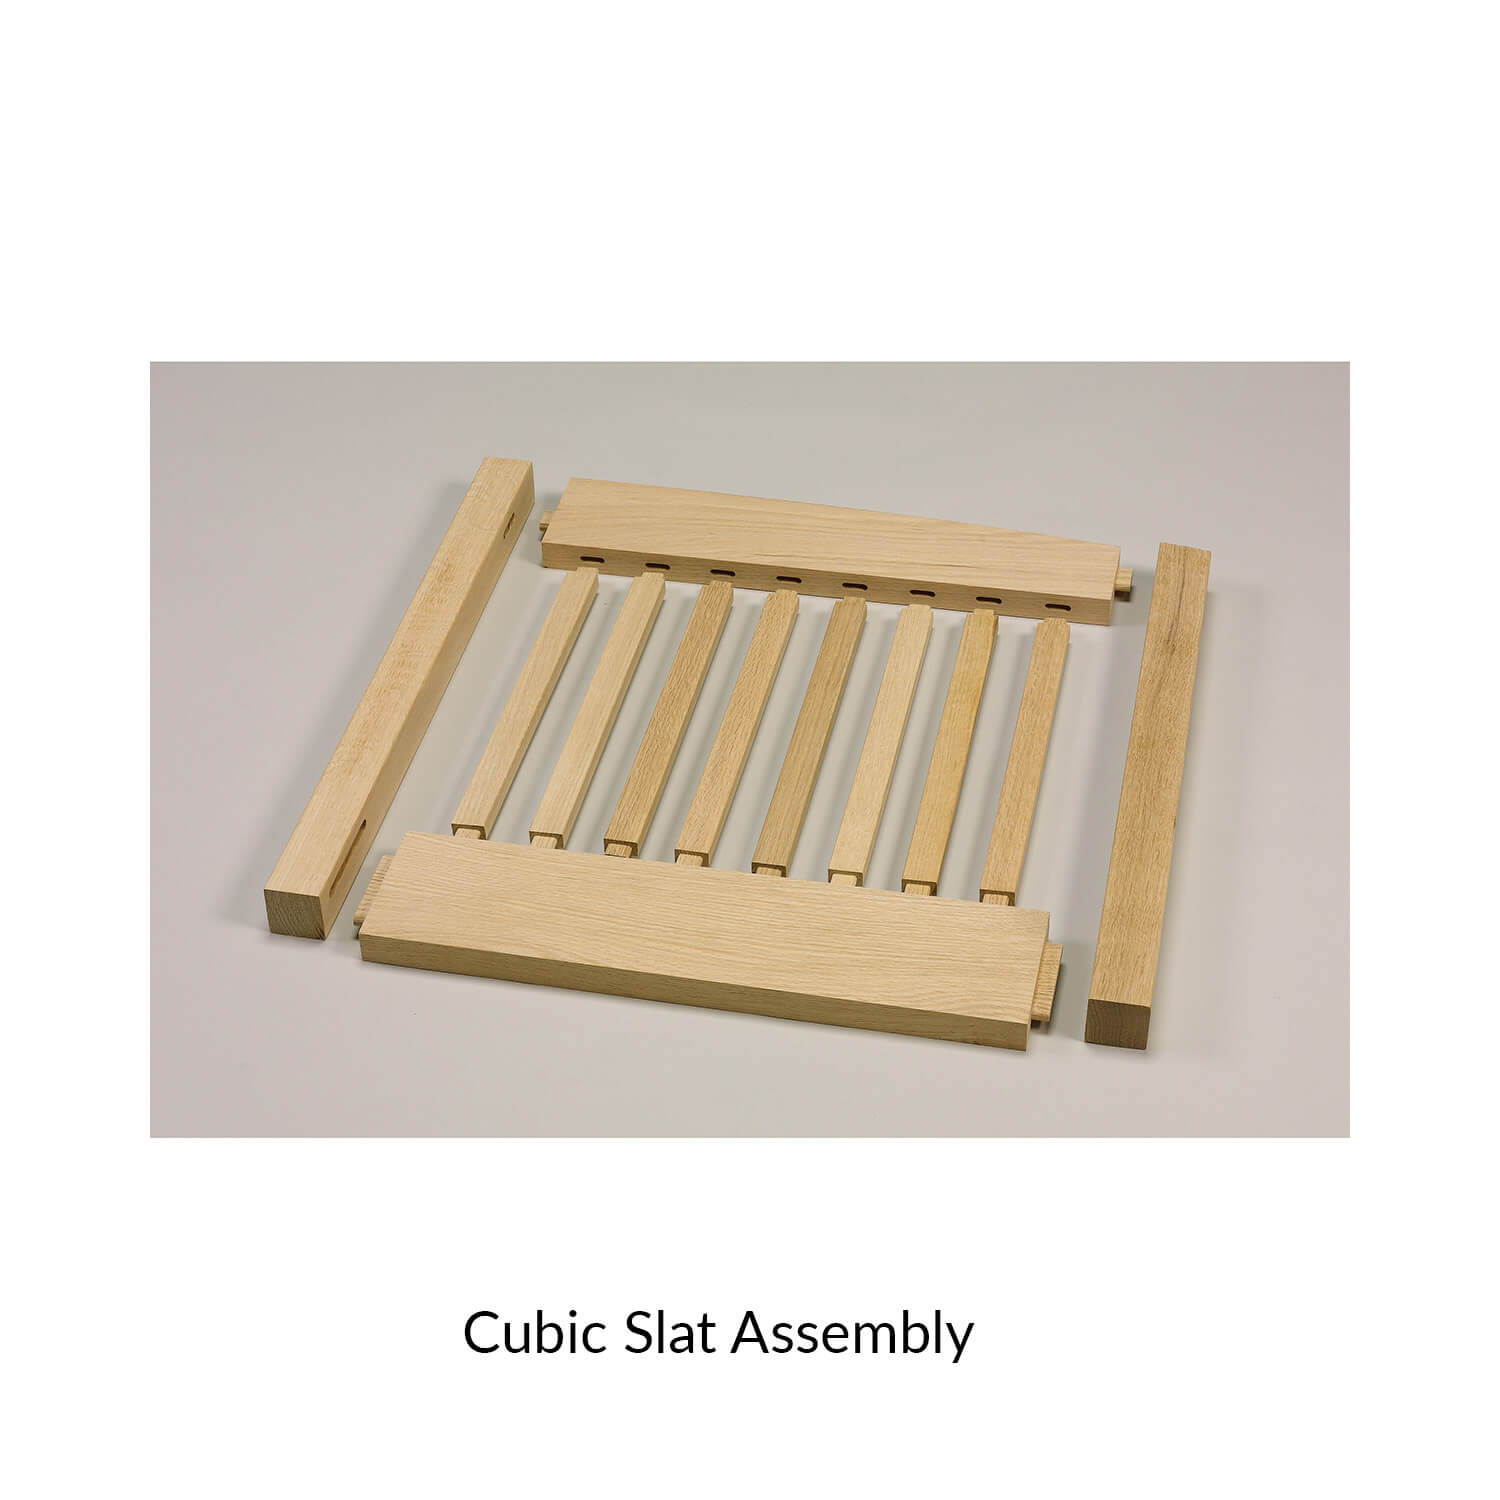 1.-cubic-slat-assembly.jpg